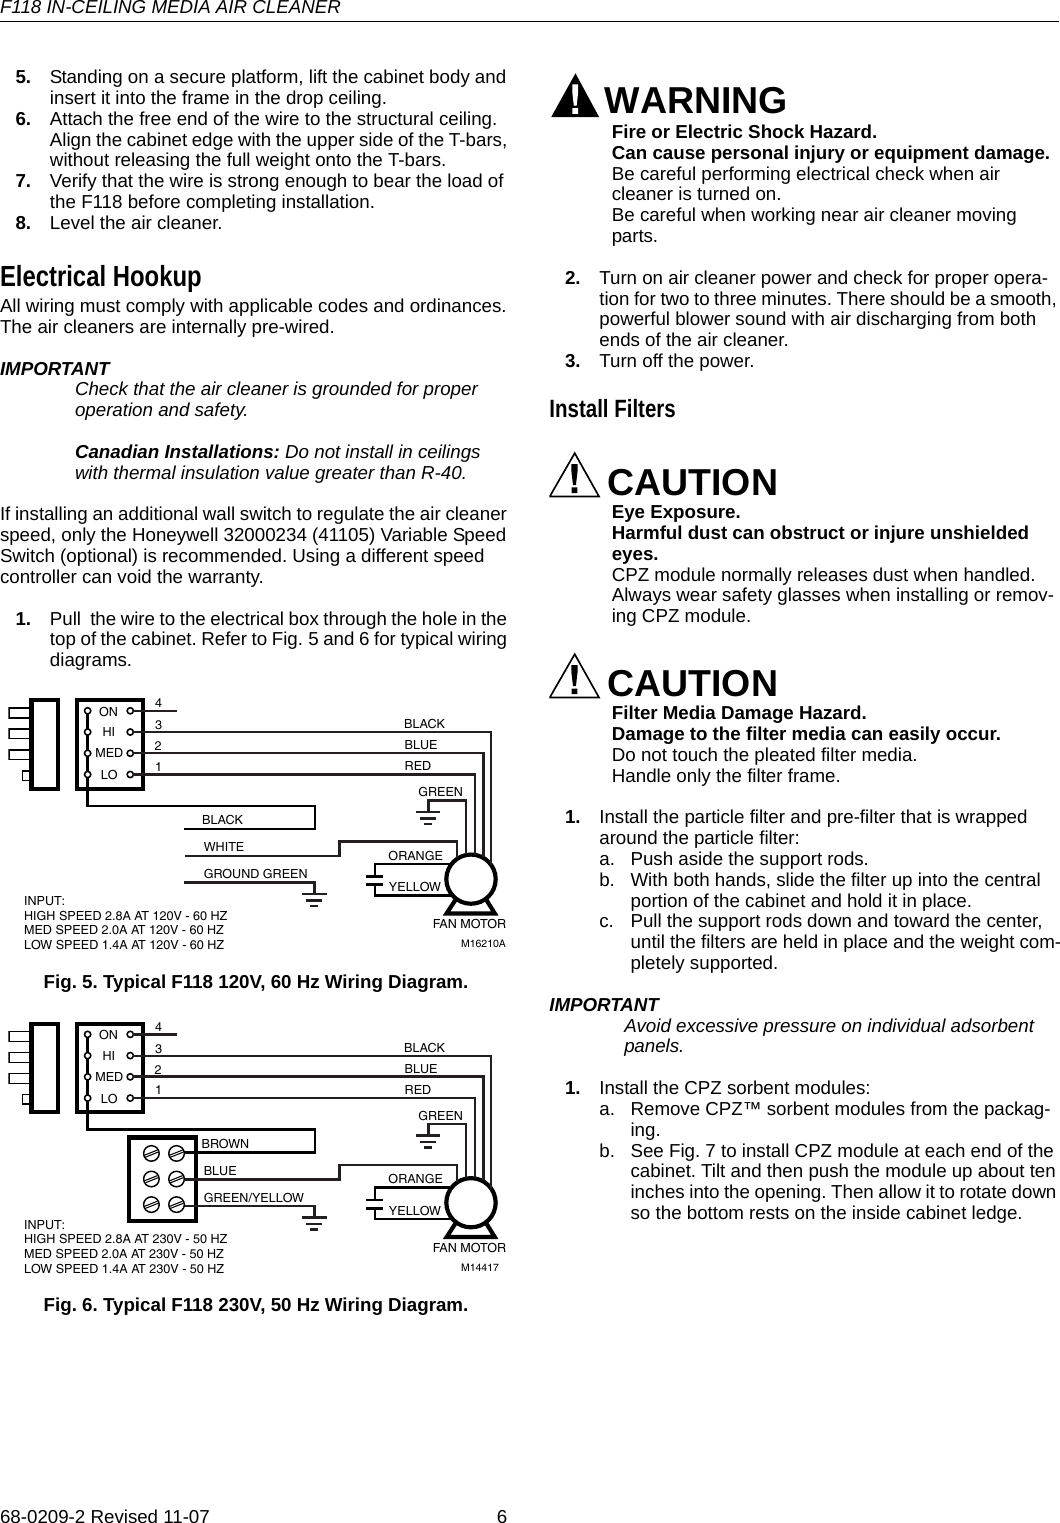 Honeywell F118 68 0209 2 Product Data User Manual To The 84eba213 B Cabinet Wiring Diagrams Page 6 Of 12